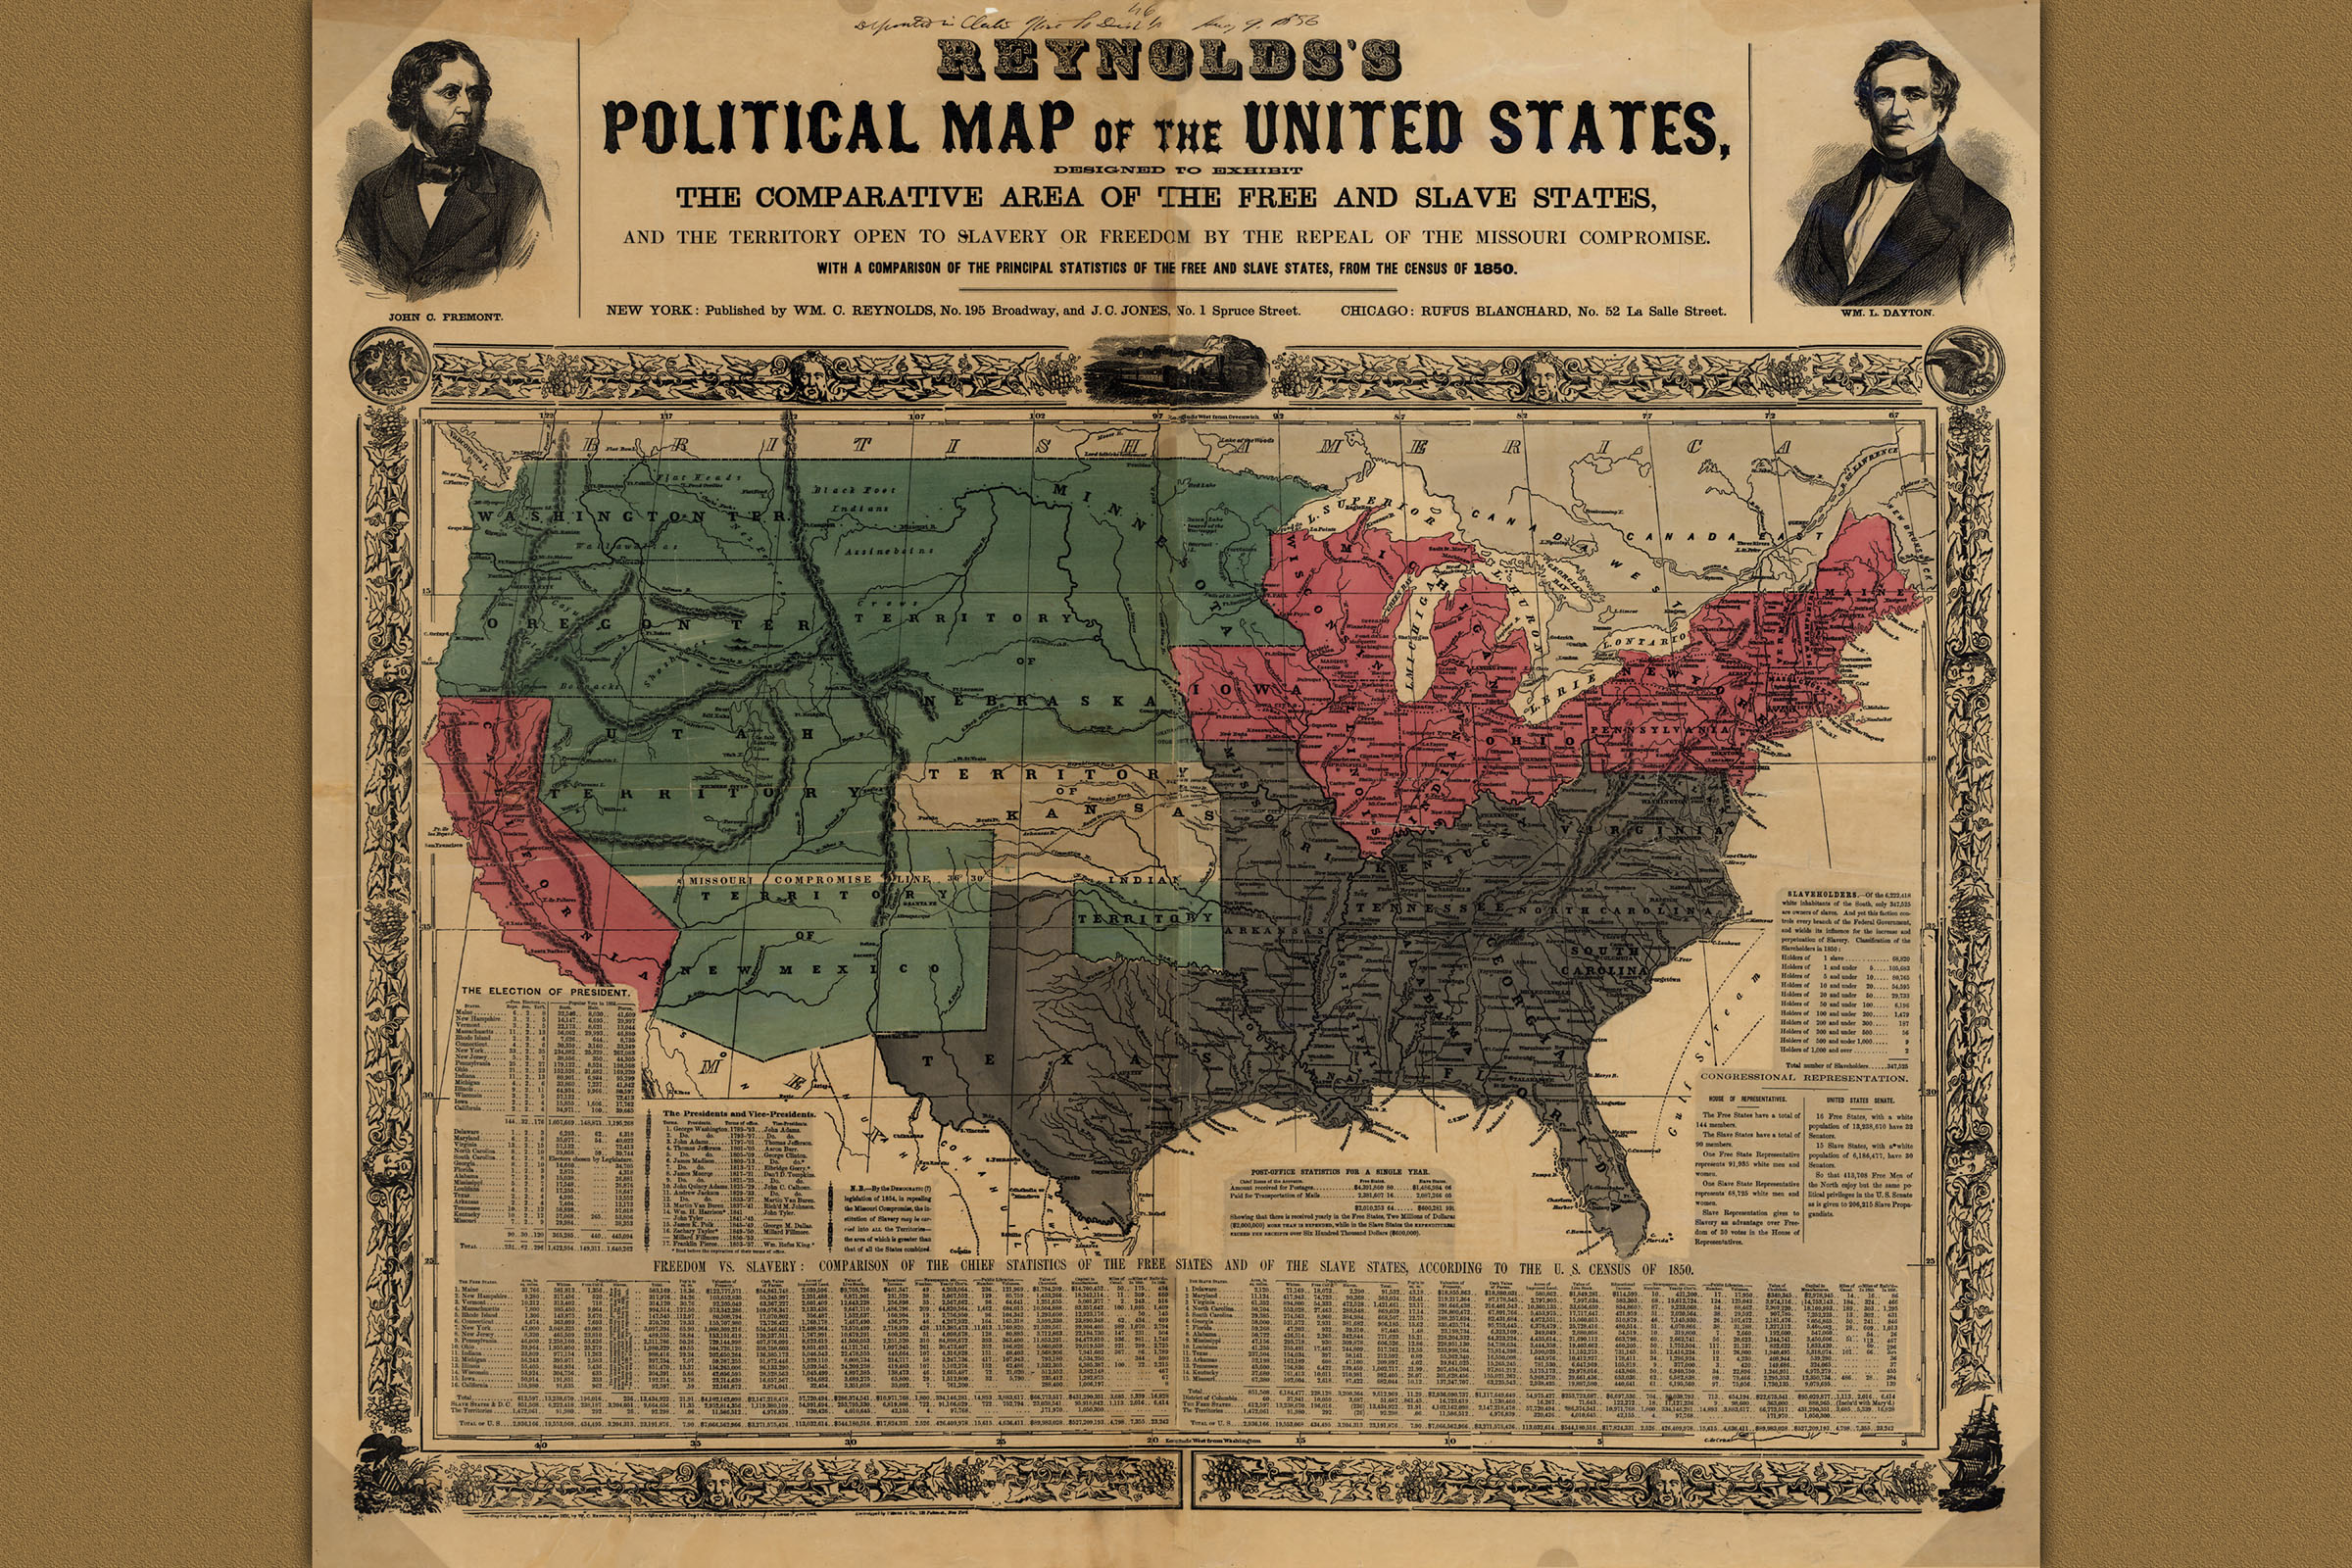 Details about Reynolds\'s Political Map of United States; Civil War, 1856  Historic Map